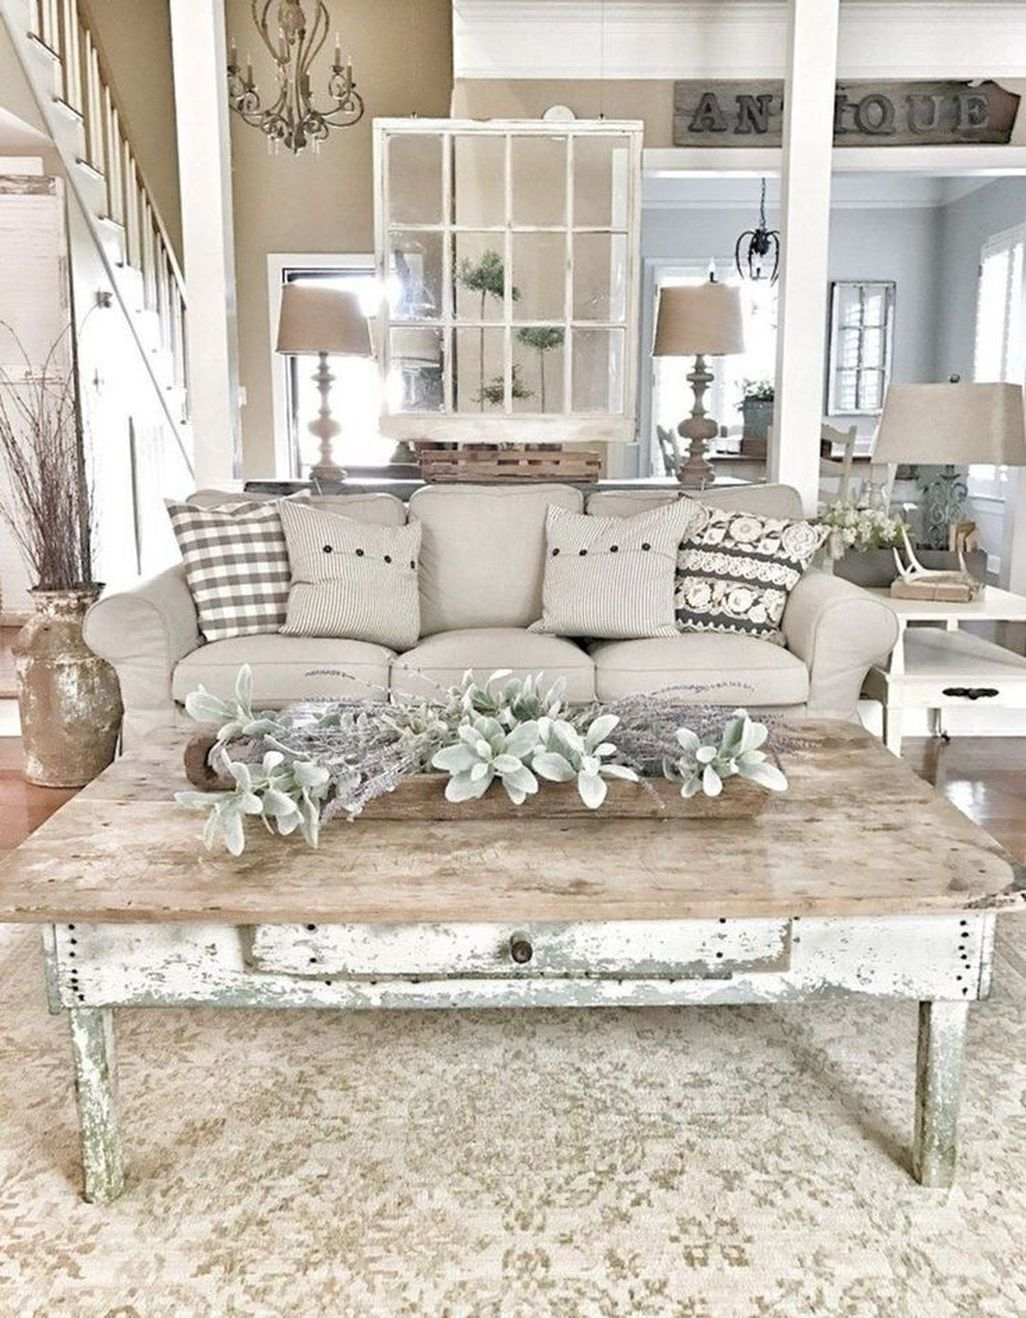 47 Amazing Rustic Farmhouse Living Room Decoration Ideas – HomeDecorish